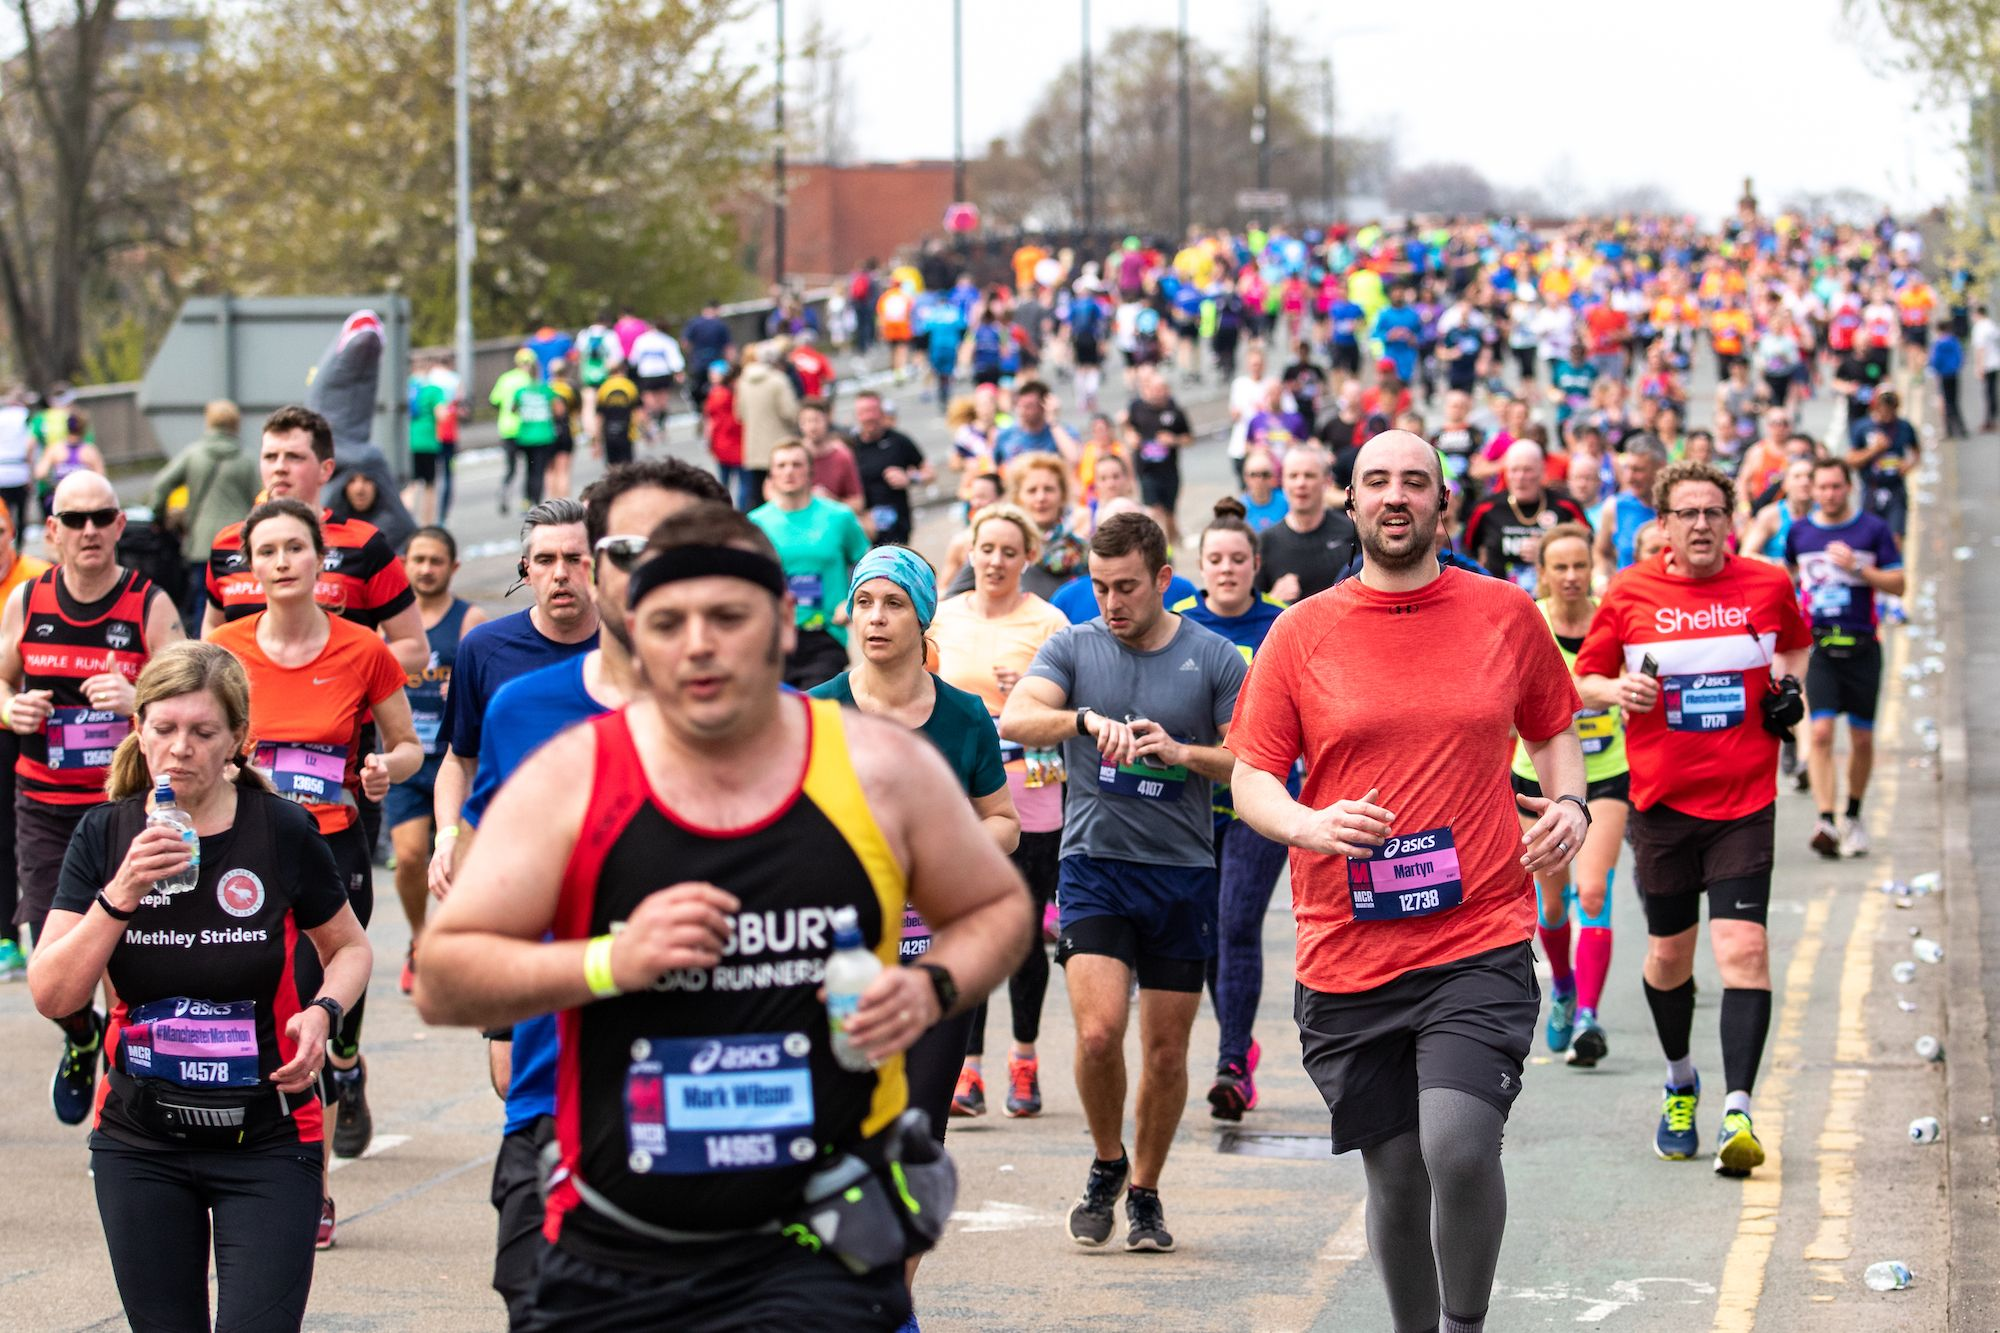 Runners who had signed up for cancelled English Half Marathon offered free places in this race